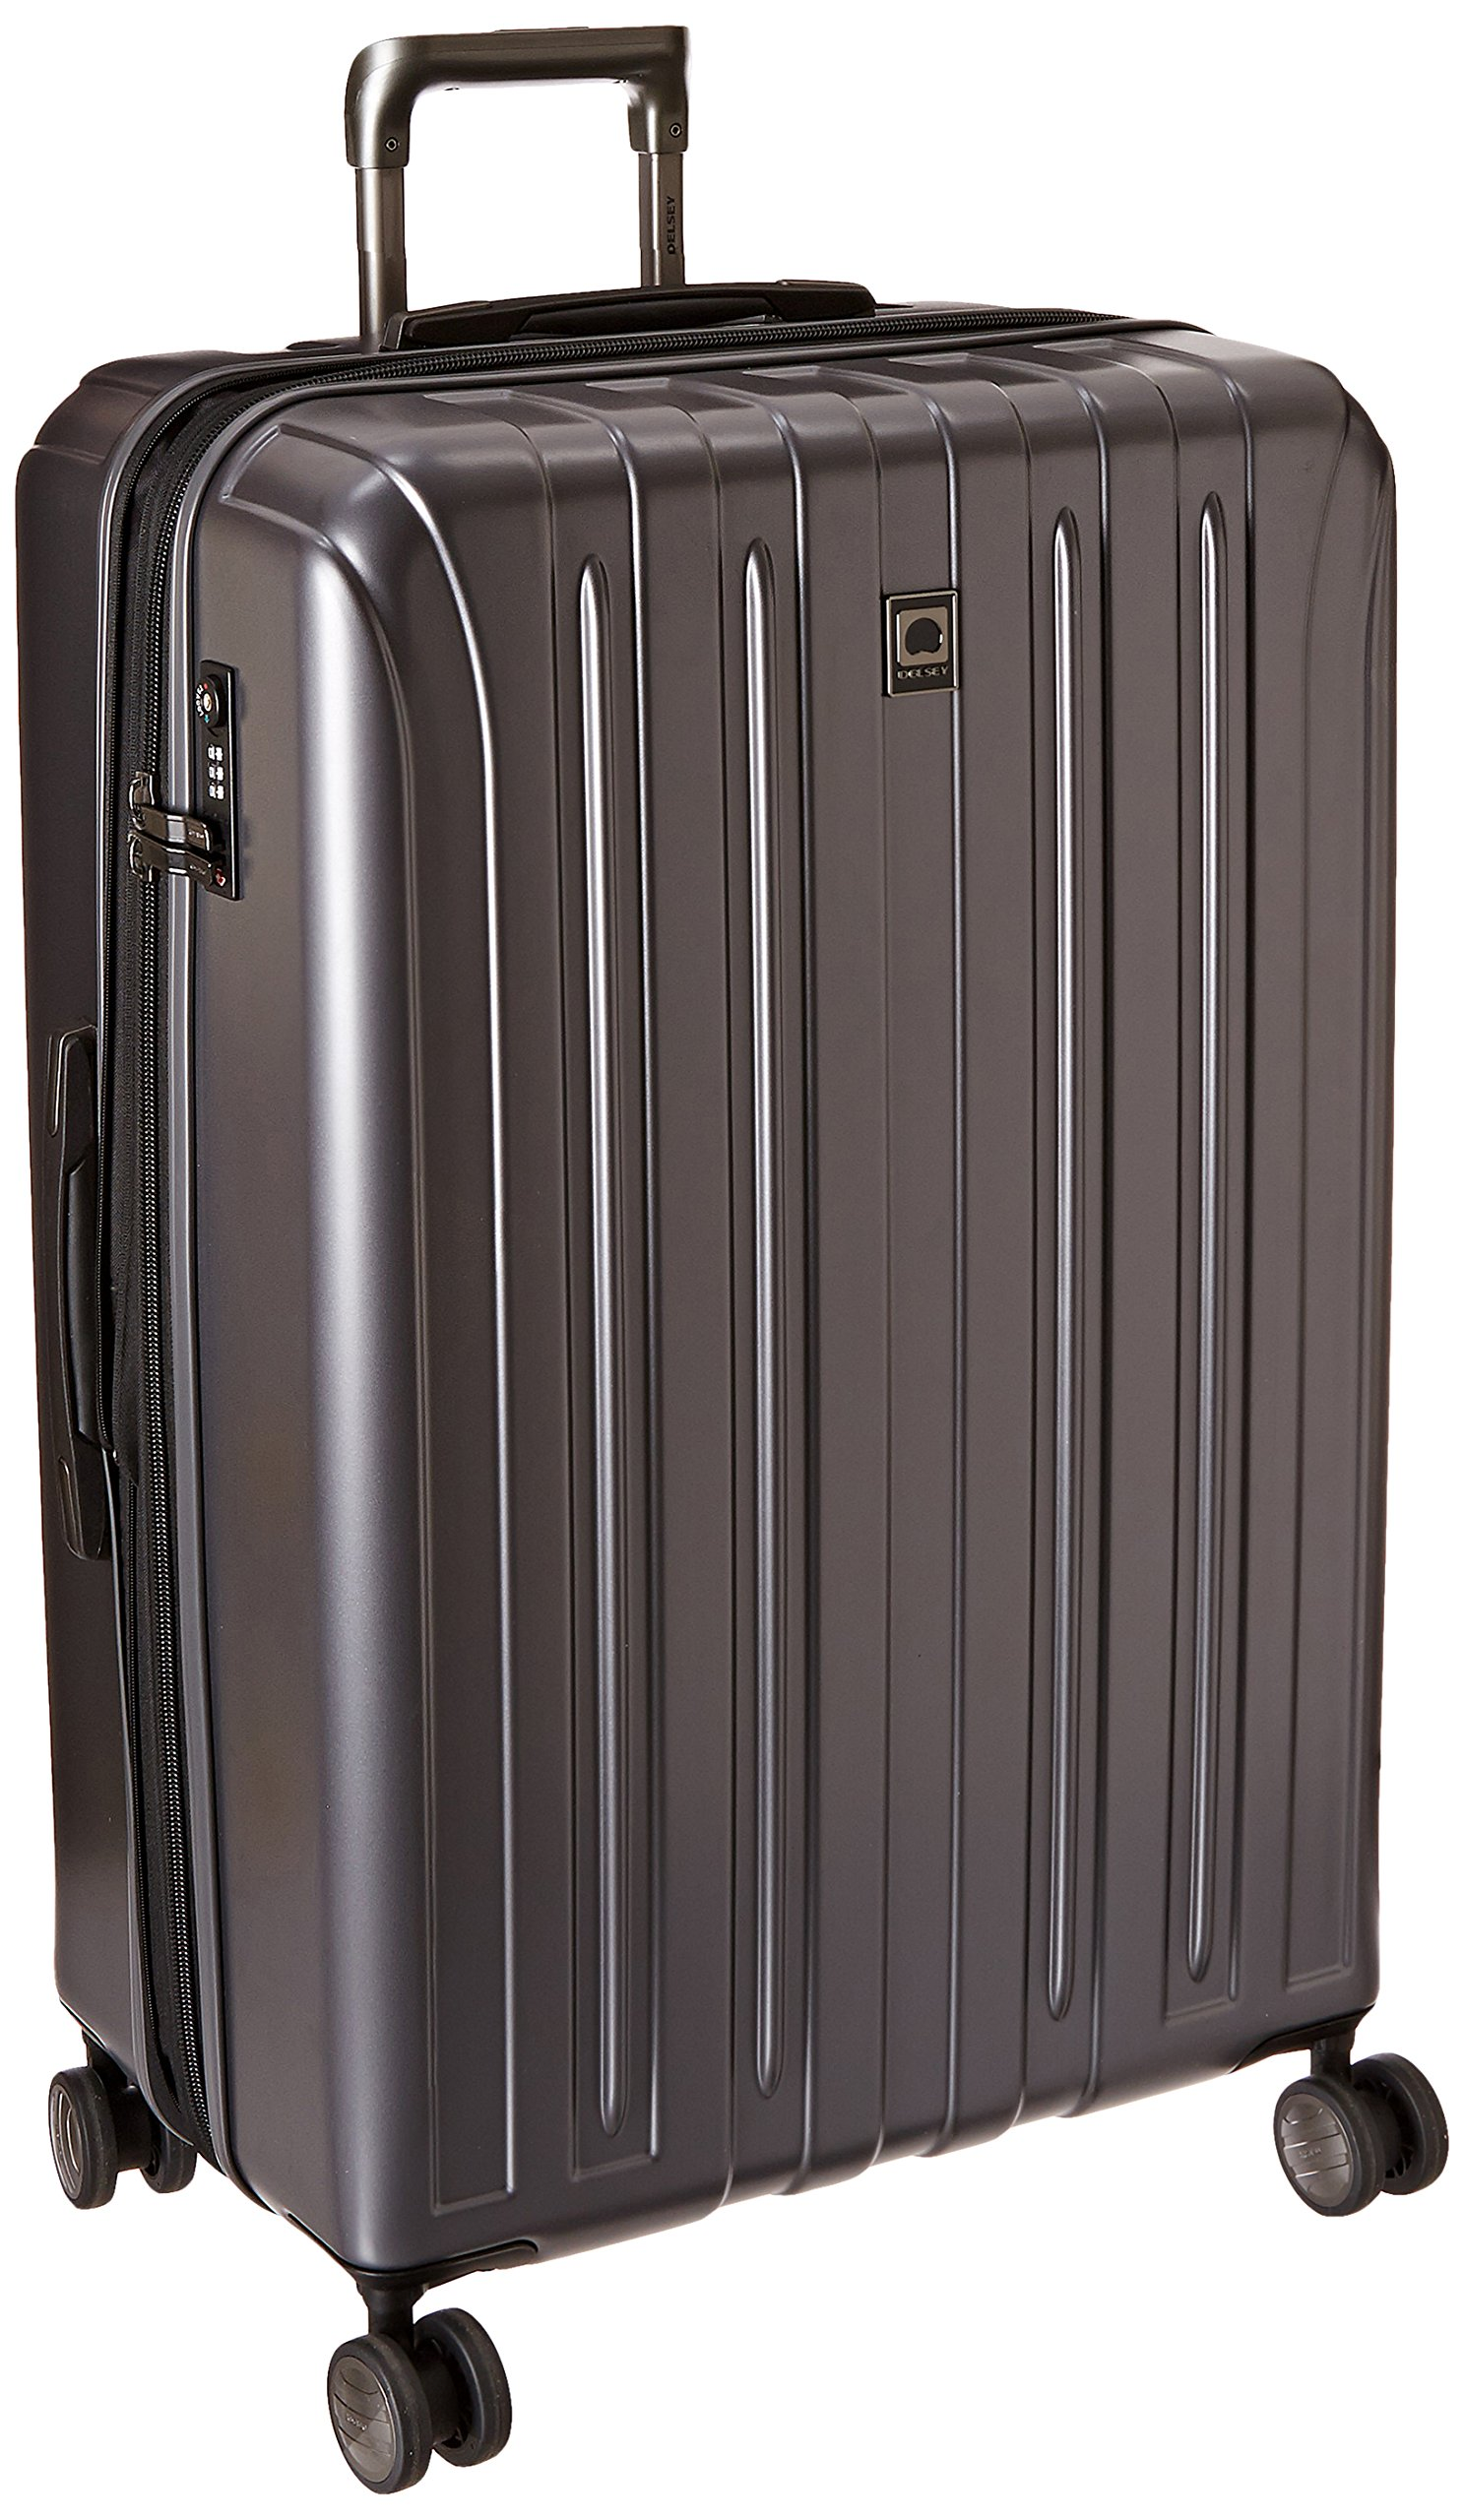 DELSEY Paris Luggage Helium Titanium 29'' Exp. Spinner Trolley Hard Case Suitcase, Graphite, One Size